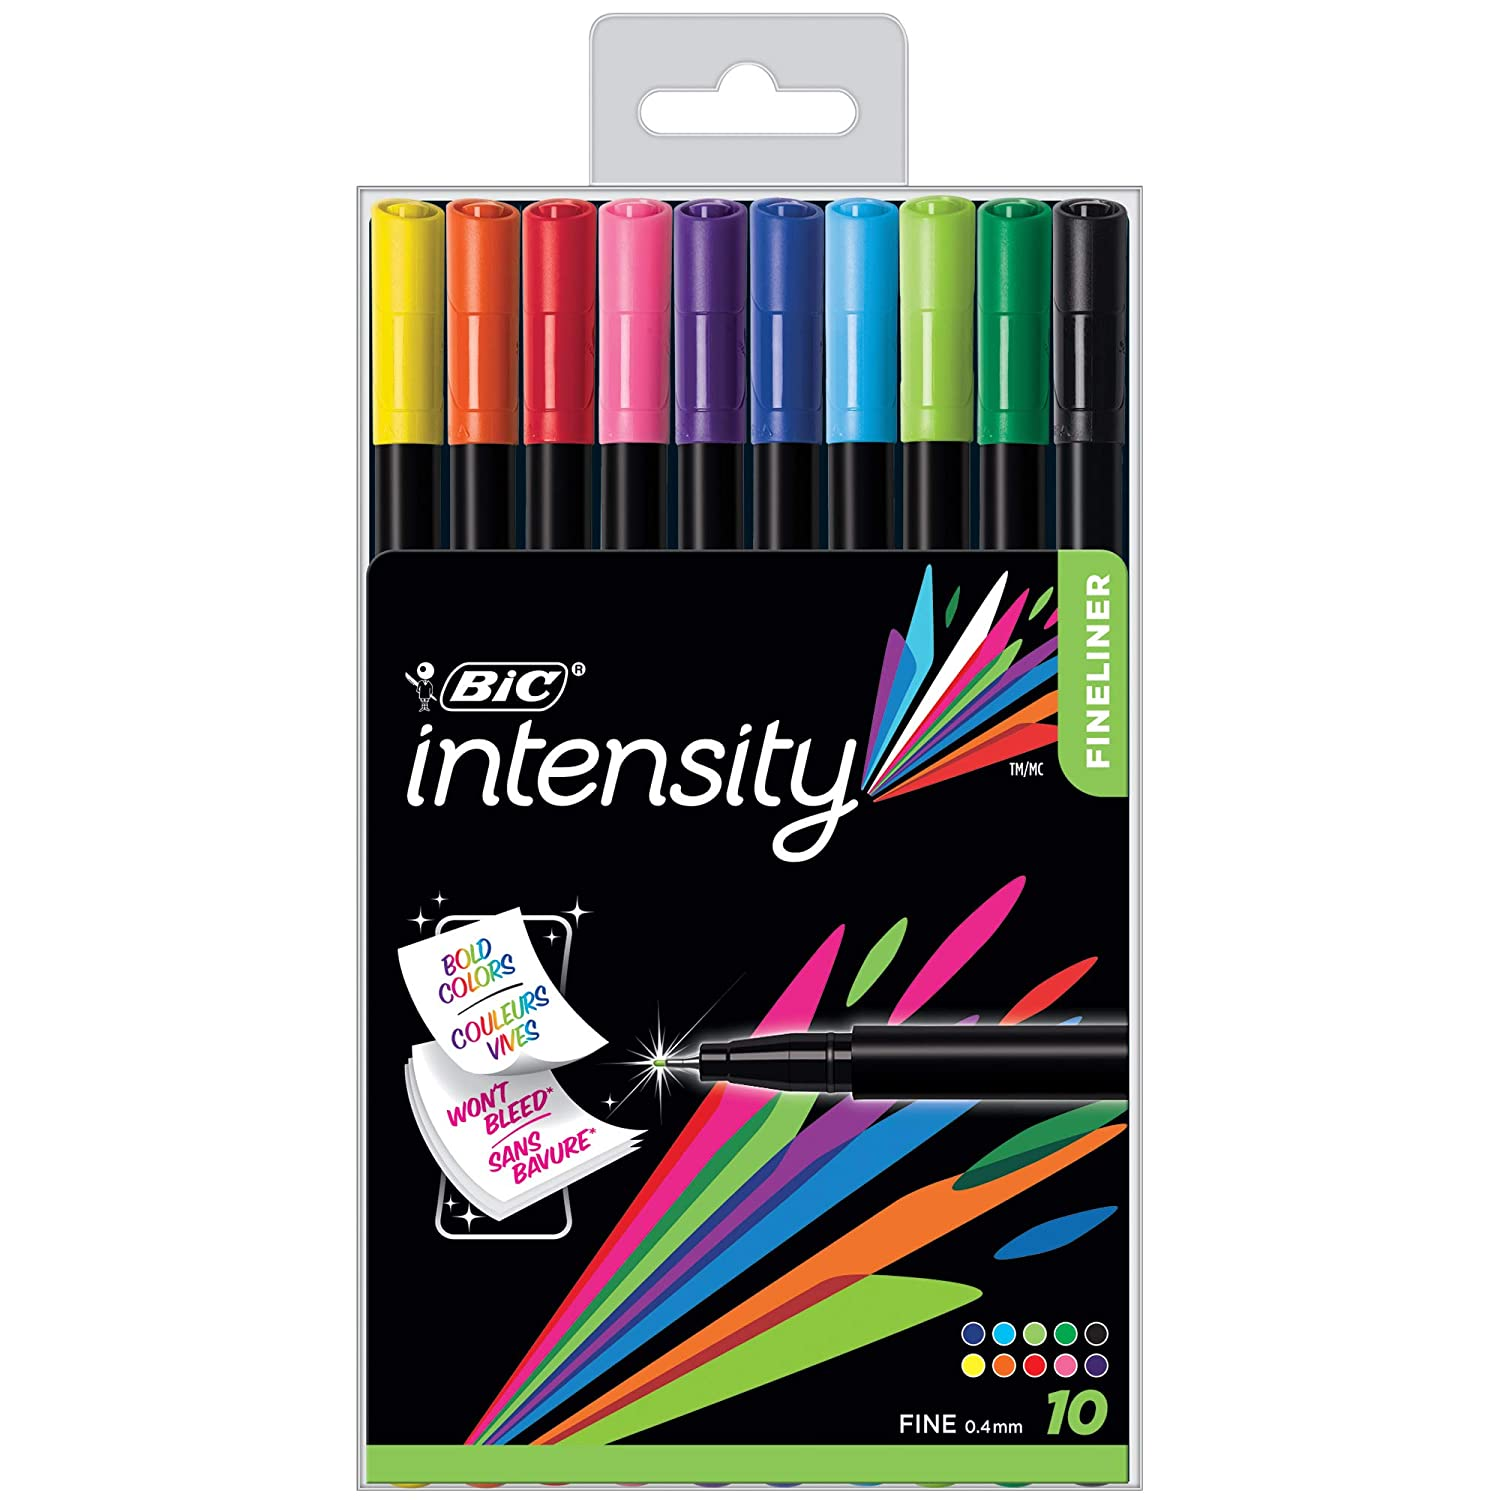 BIC Color Collection by Intensity Fineliner, 0.4mm, Assorted Colors, 10-Count